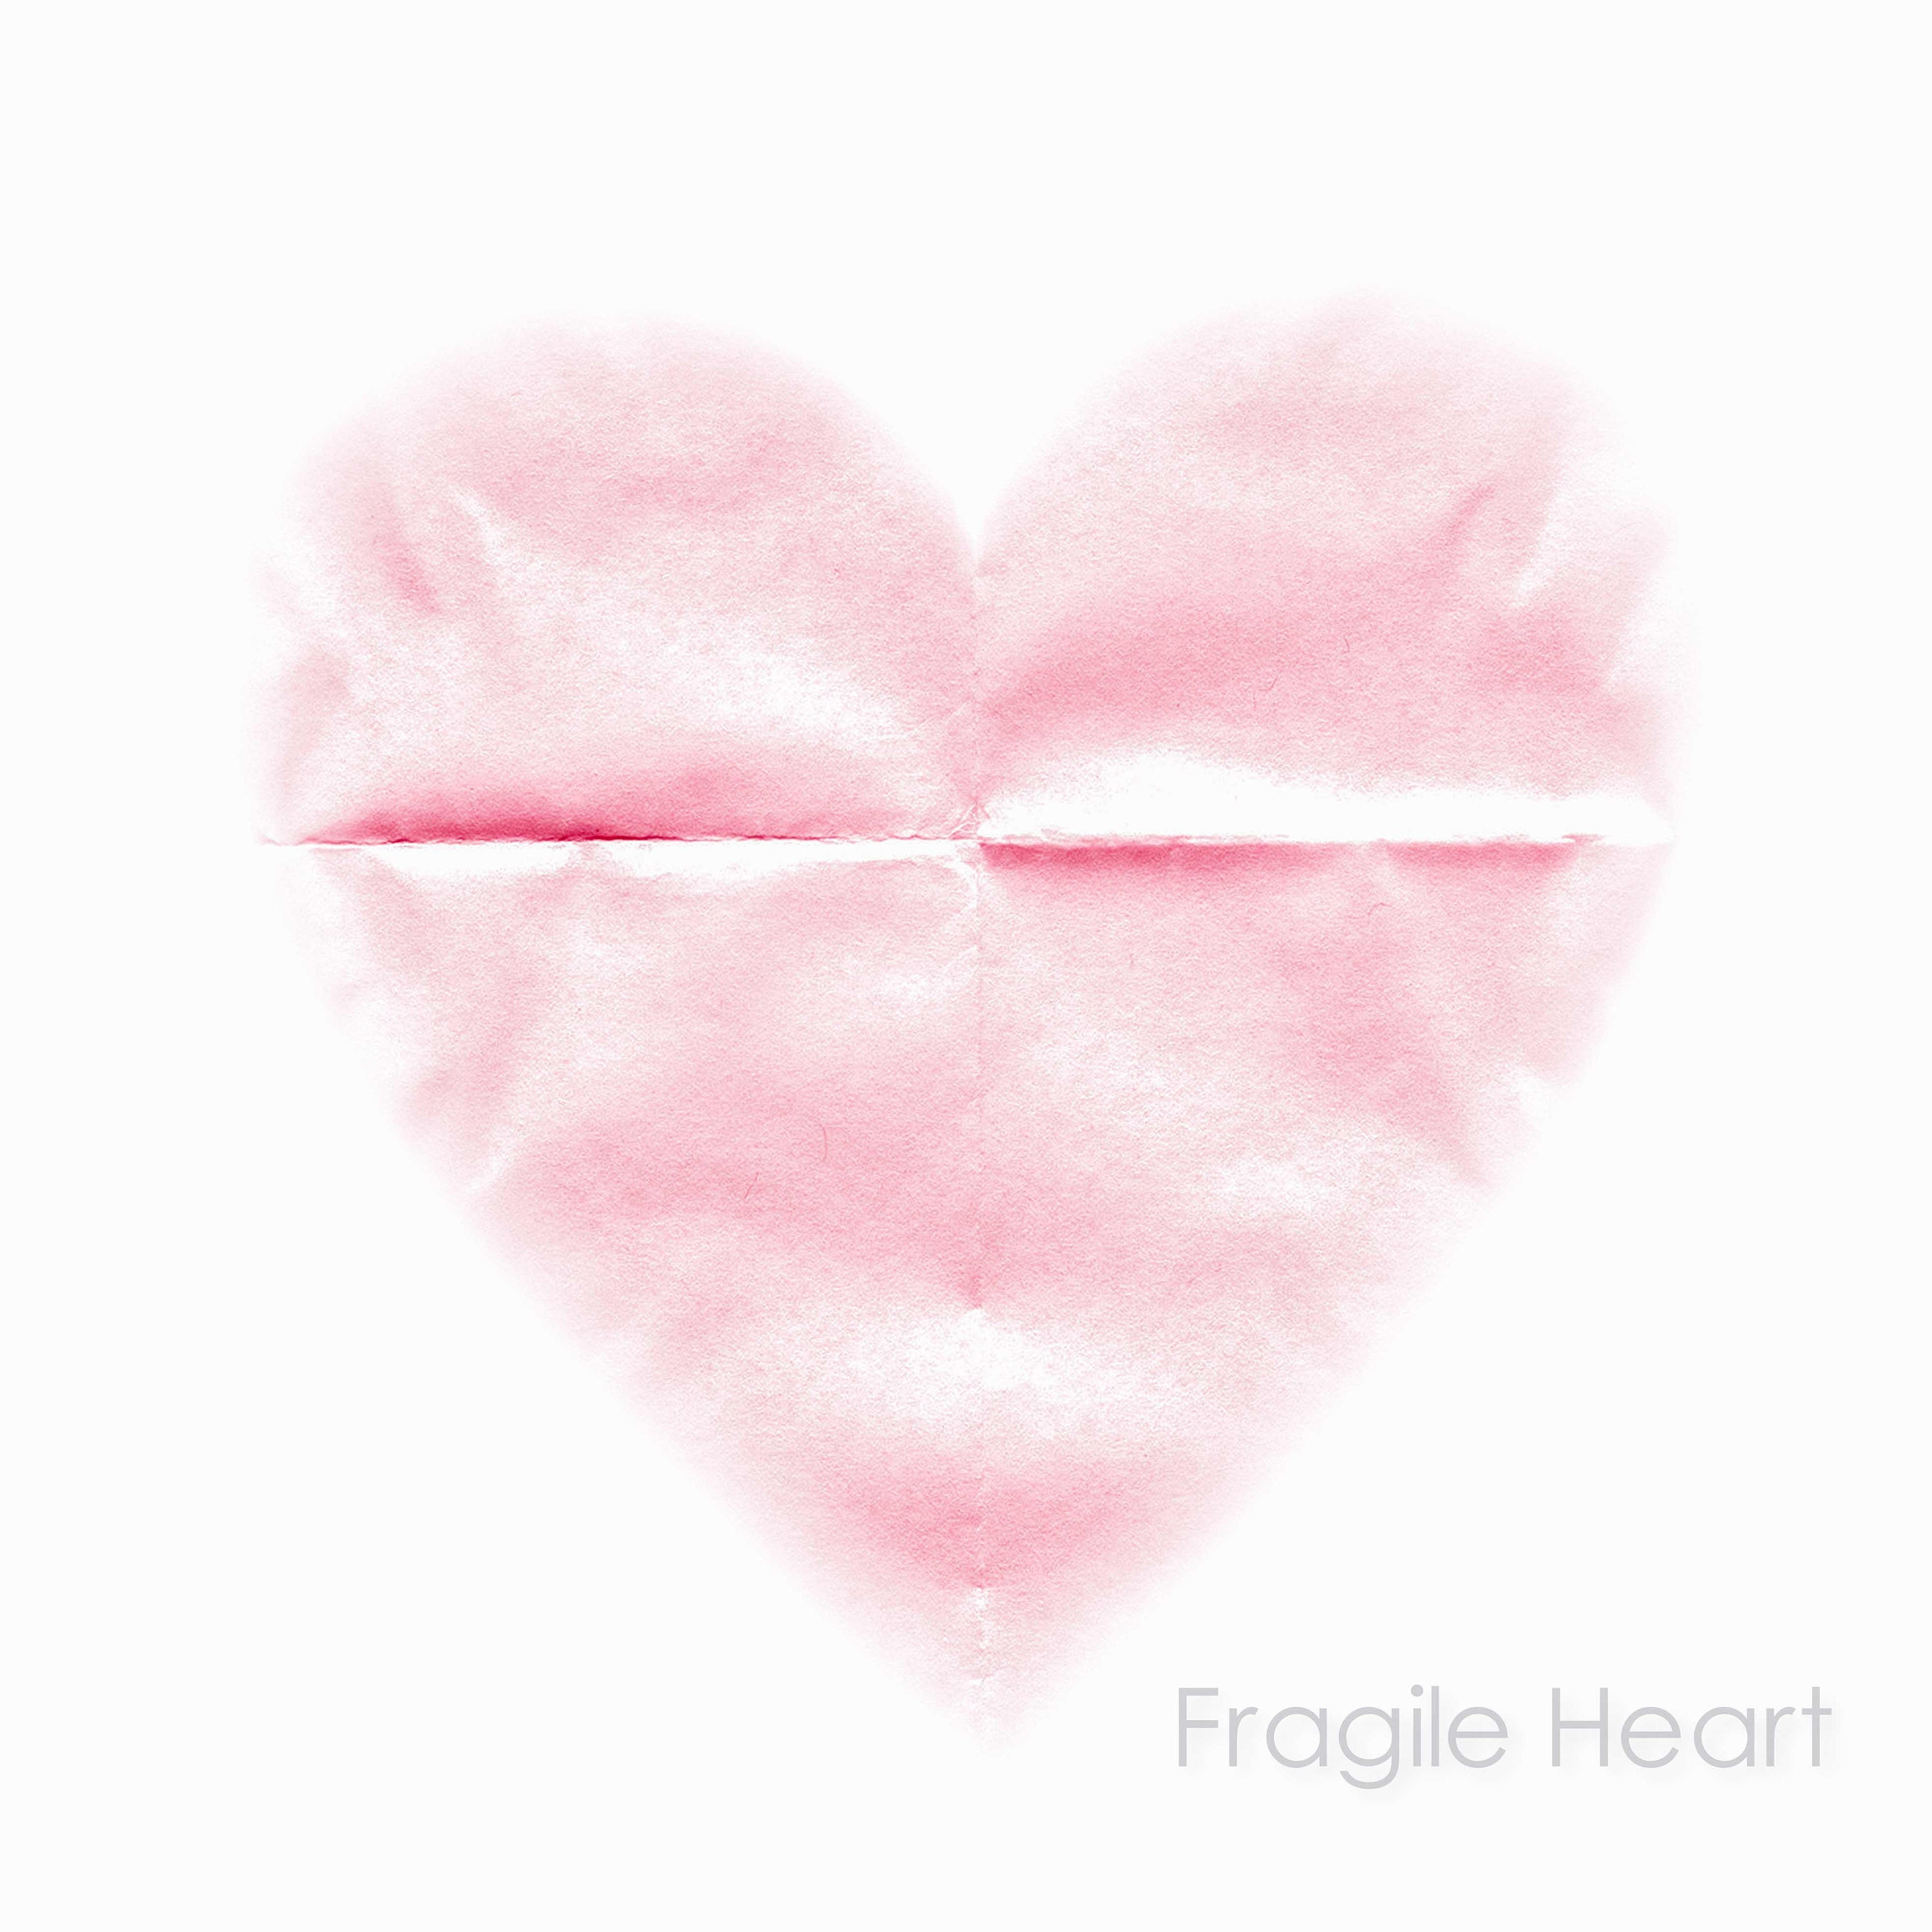 delicate pale pink heart wall art- calm love wall art- unframed limited edition love heart prints and wall art like art panel, canvas, and box frame